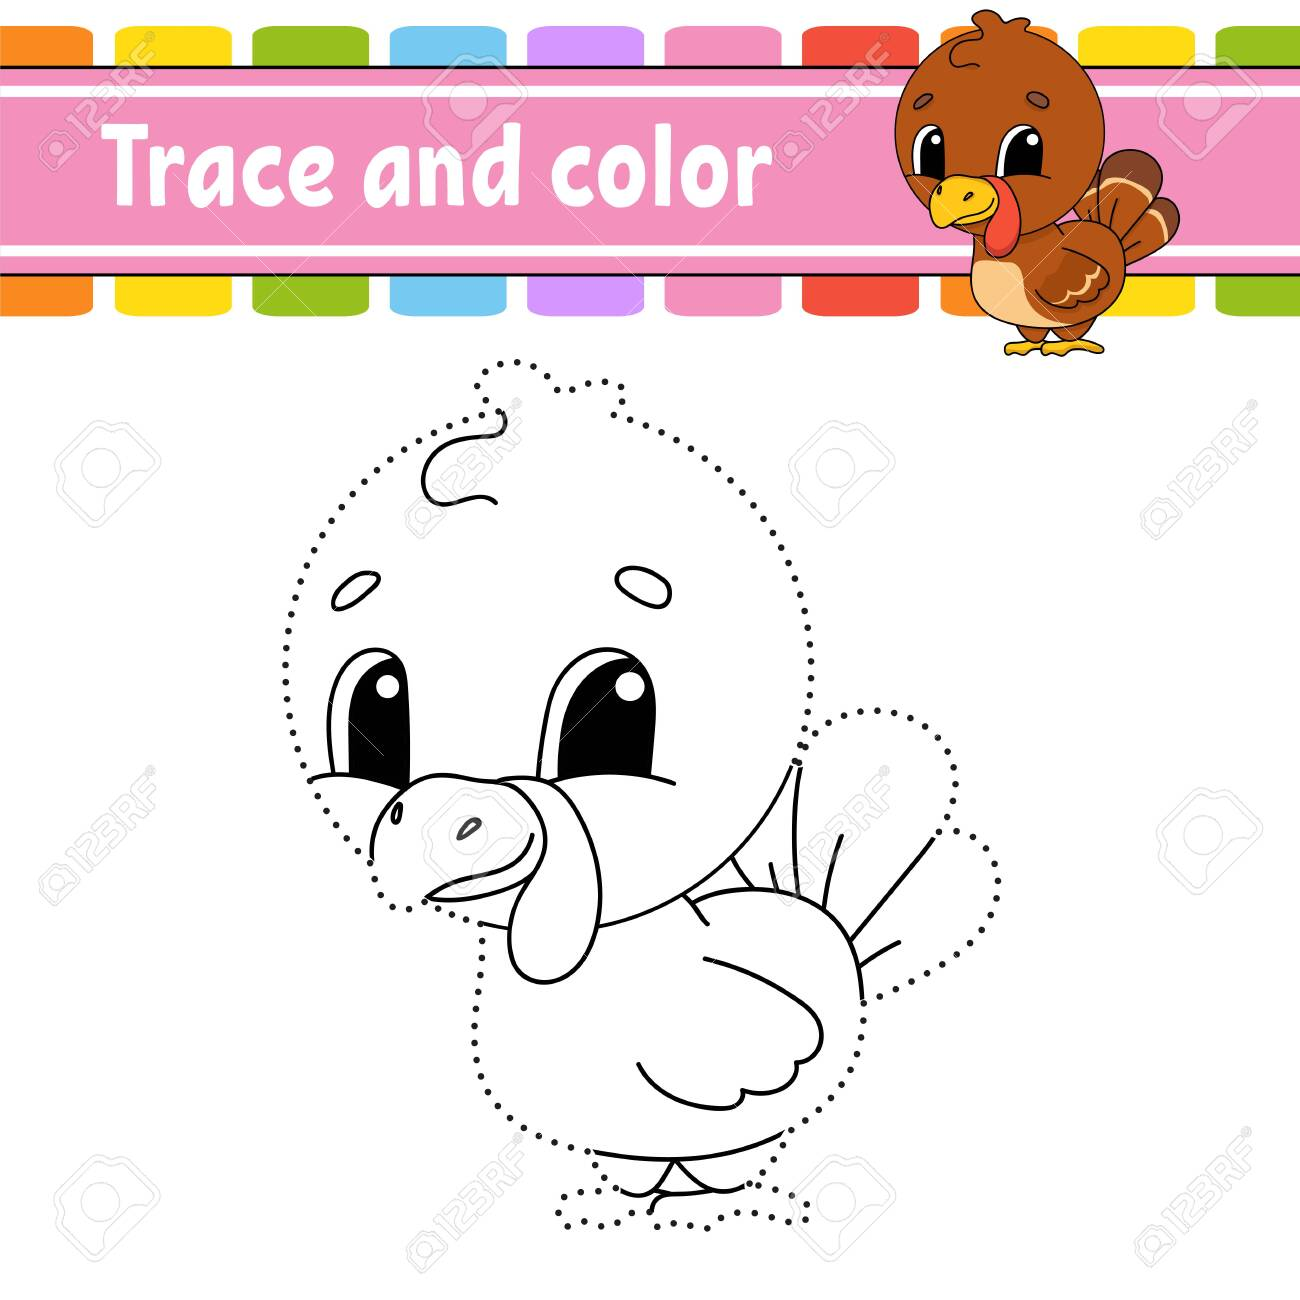 bird coloring page. others at this site | Bird coloring pages ... | 1300x1300